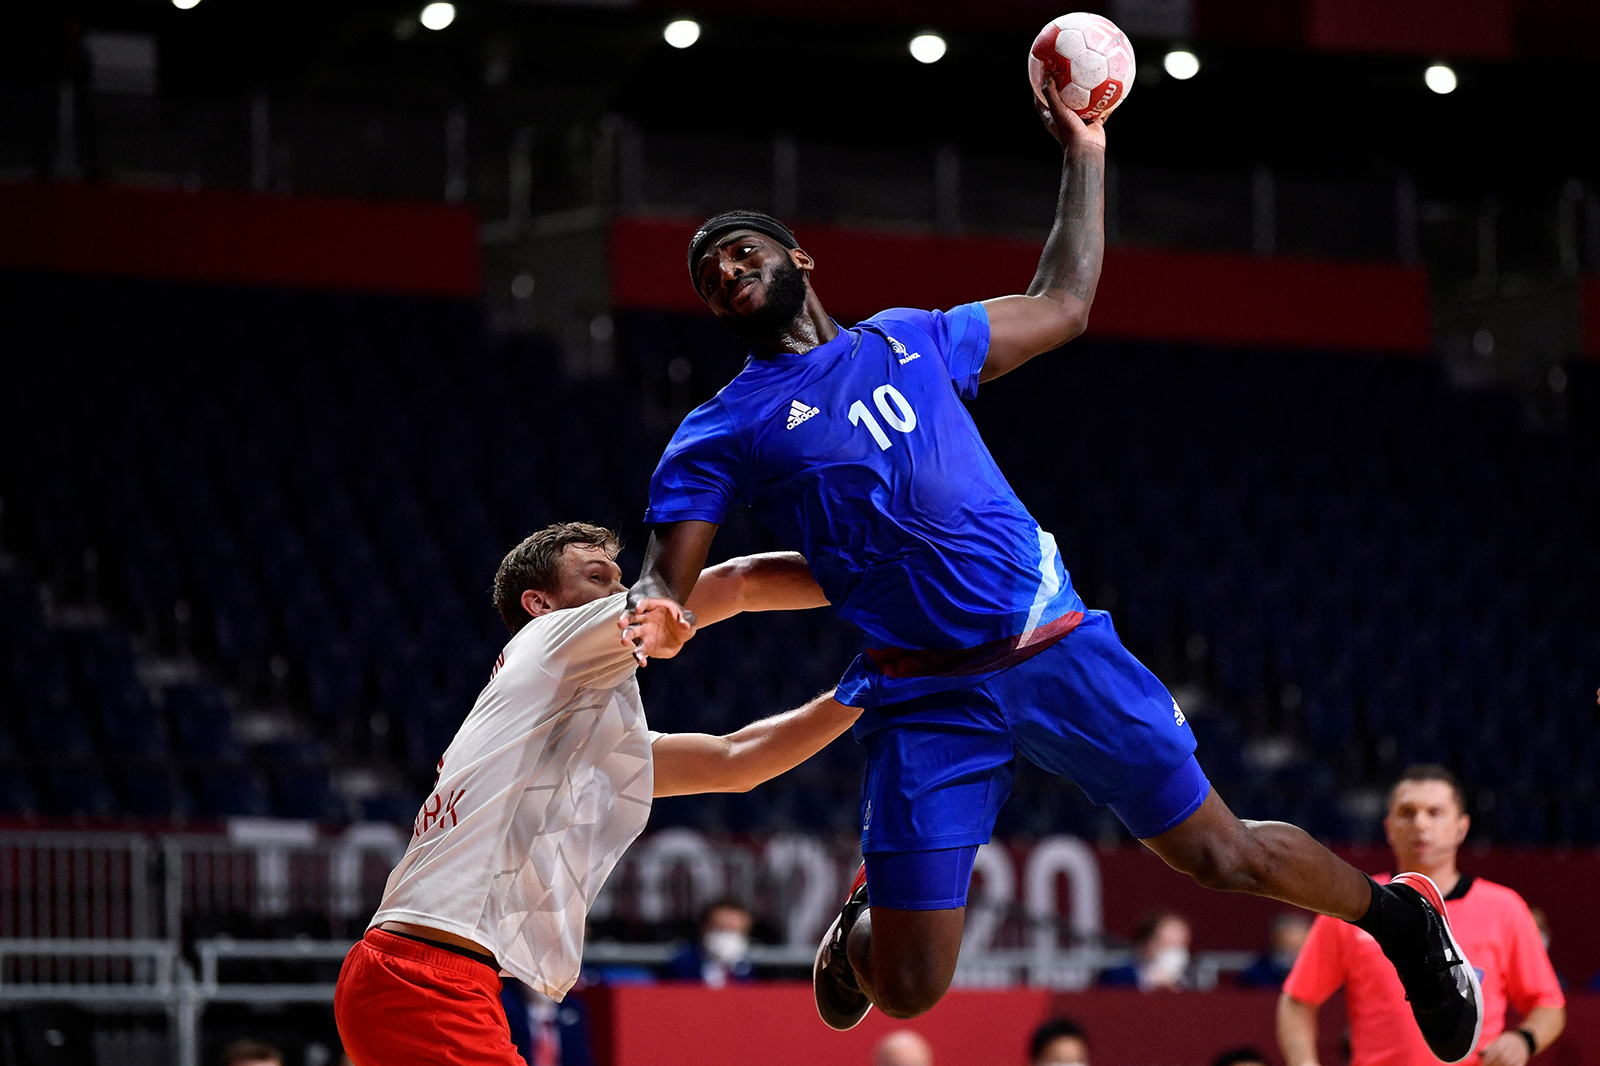 France's right back Dika Mem prepares to shoot during the men's final handball match between France and Denmark at the Tokyo 2020 Olympic Games at the Yoyogi National Stadium in Tokyo on August 7.